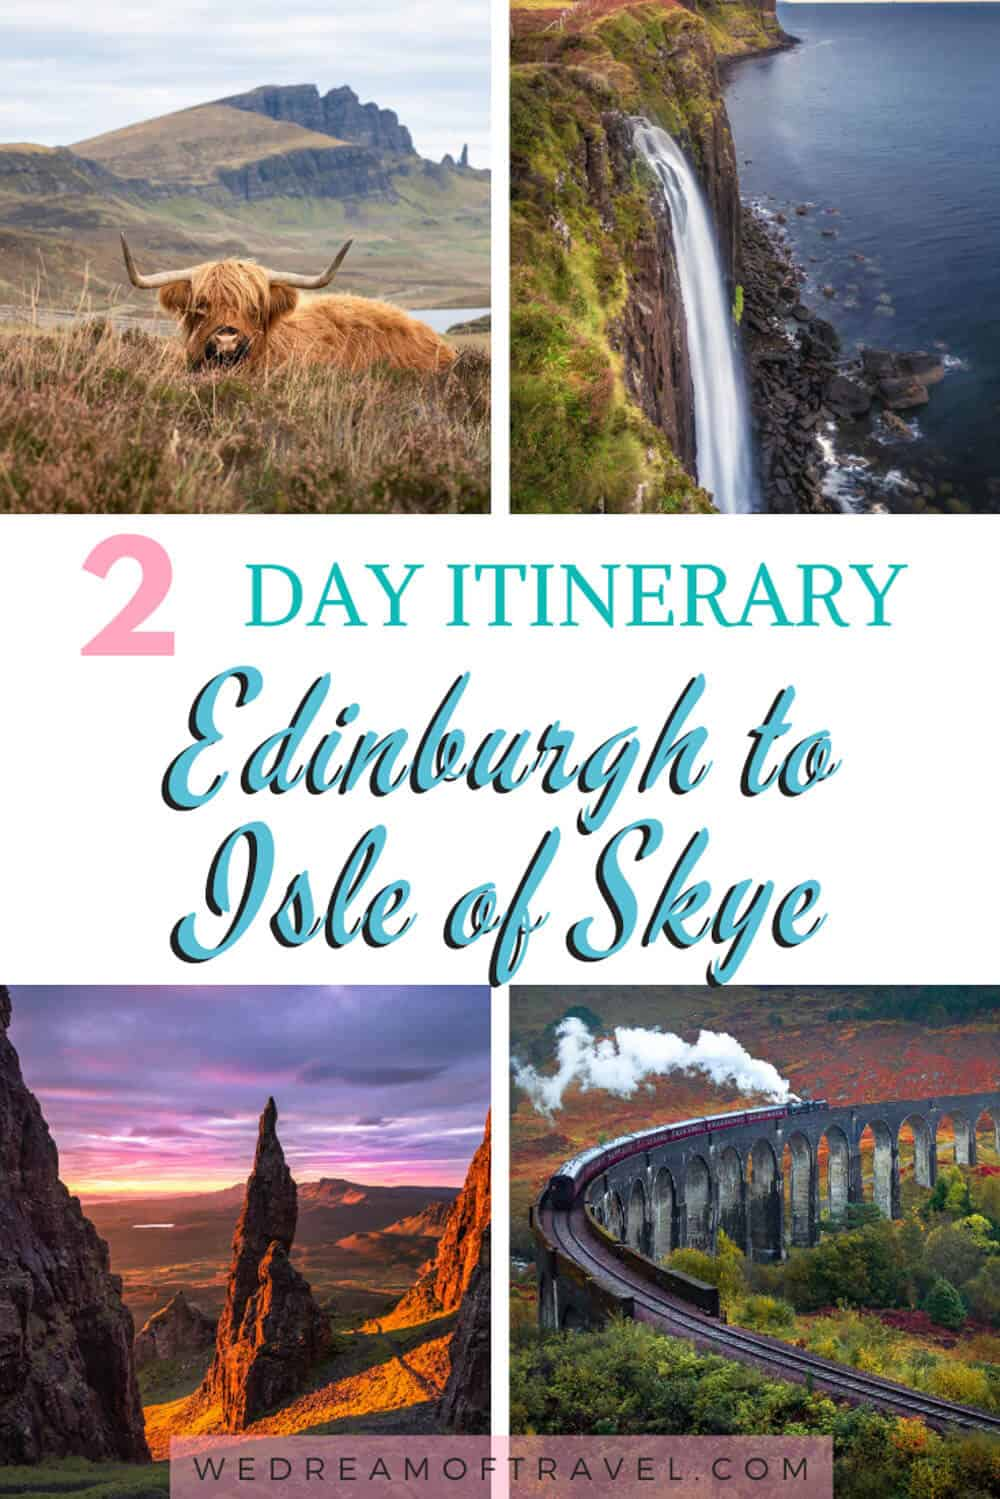 This travel guide covers a two day self-drive road trip itinerary from Edinburgh to Isle of Skye.  It takes in all the best landscapes and castles.  Complete with maps and timings to help you make the most of your time in Scotland!  #scotland #travelscotland #scotlandtravelguide #roadtrip